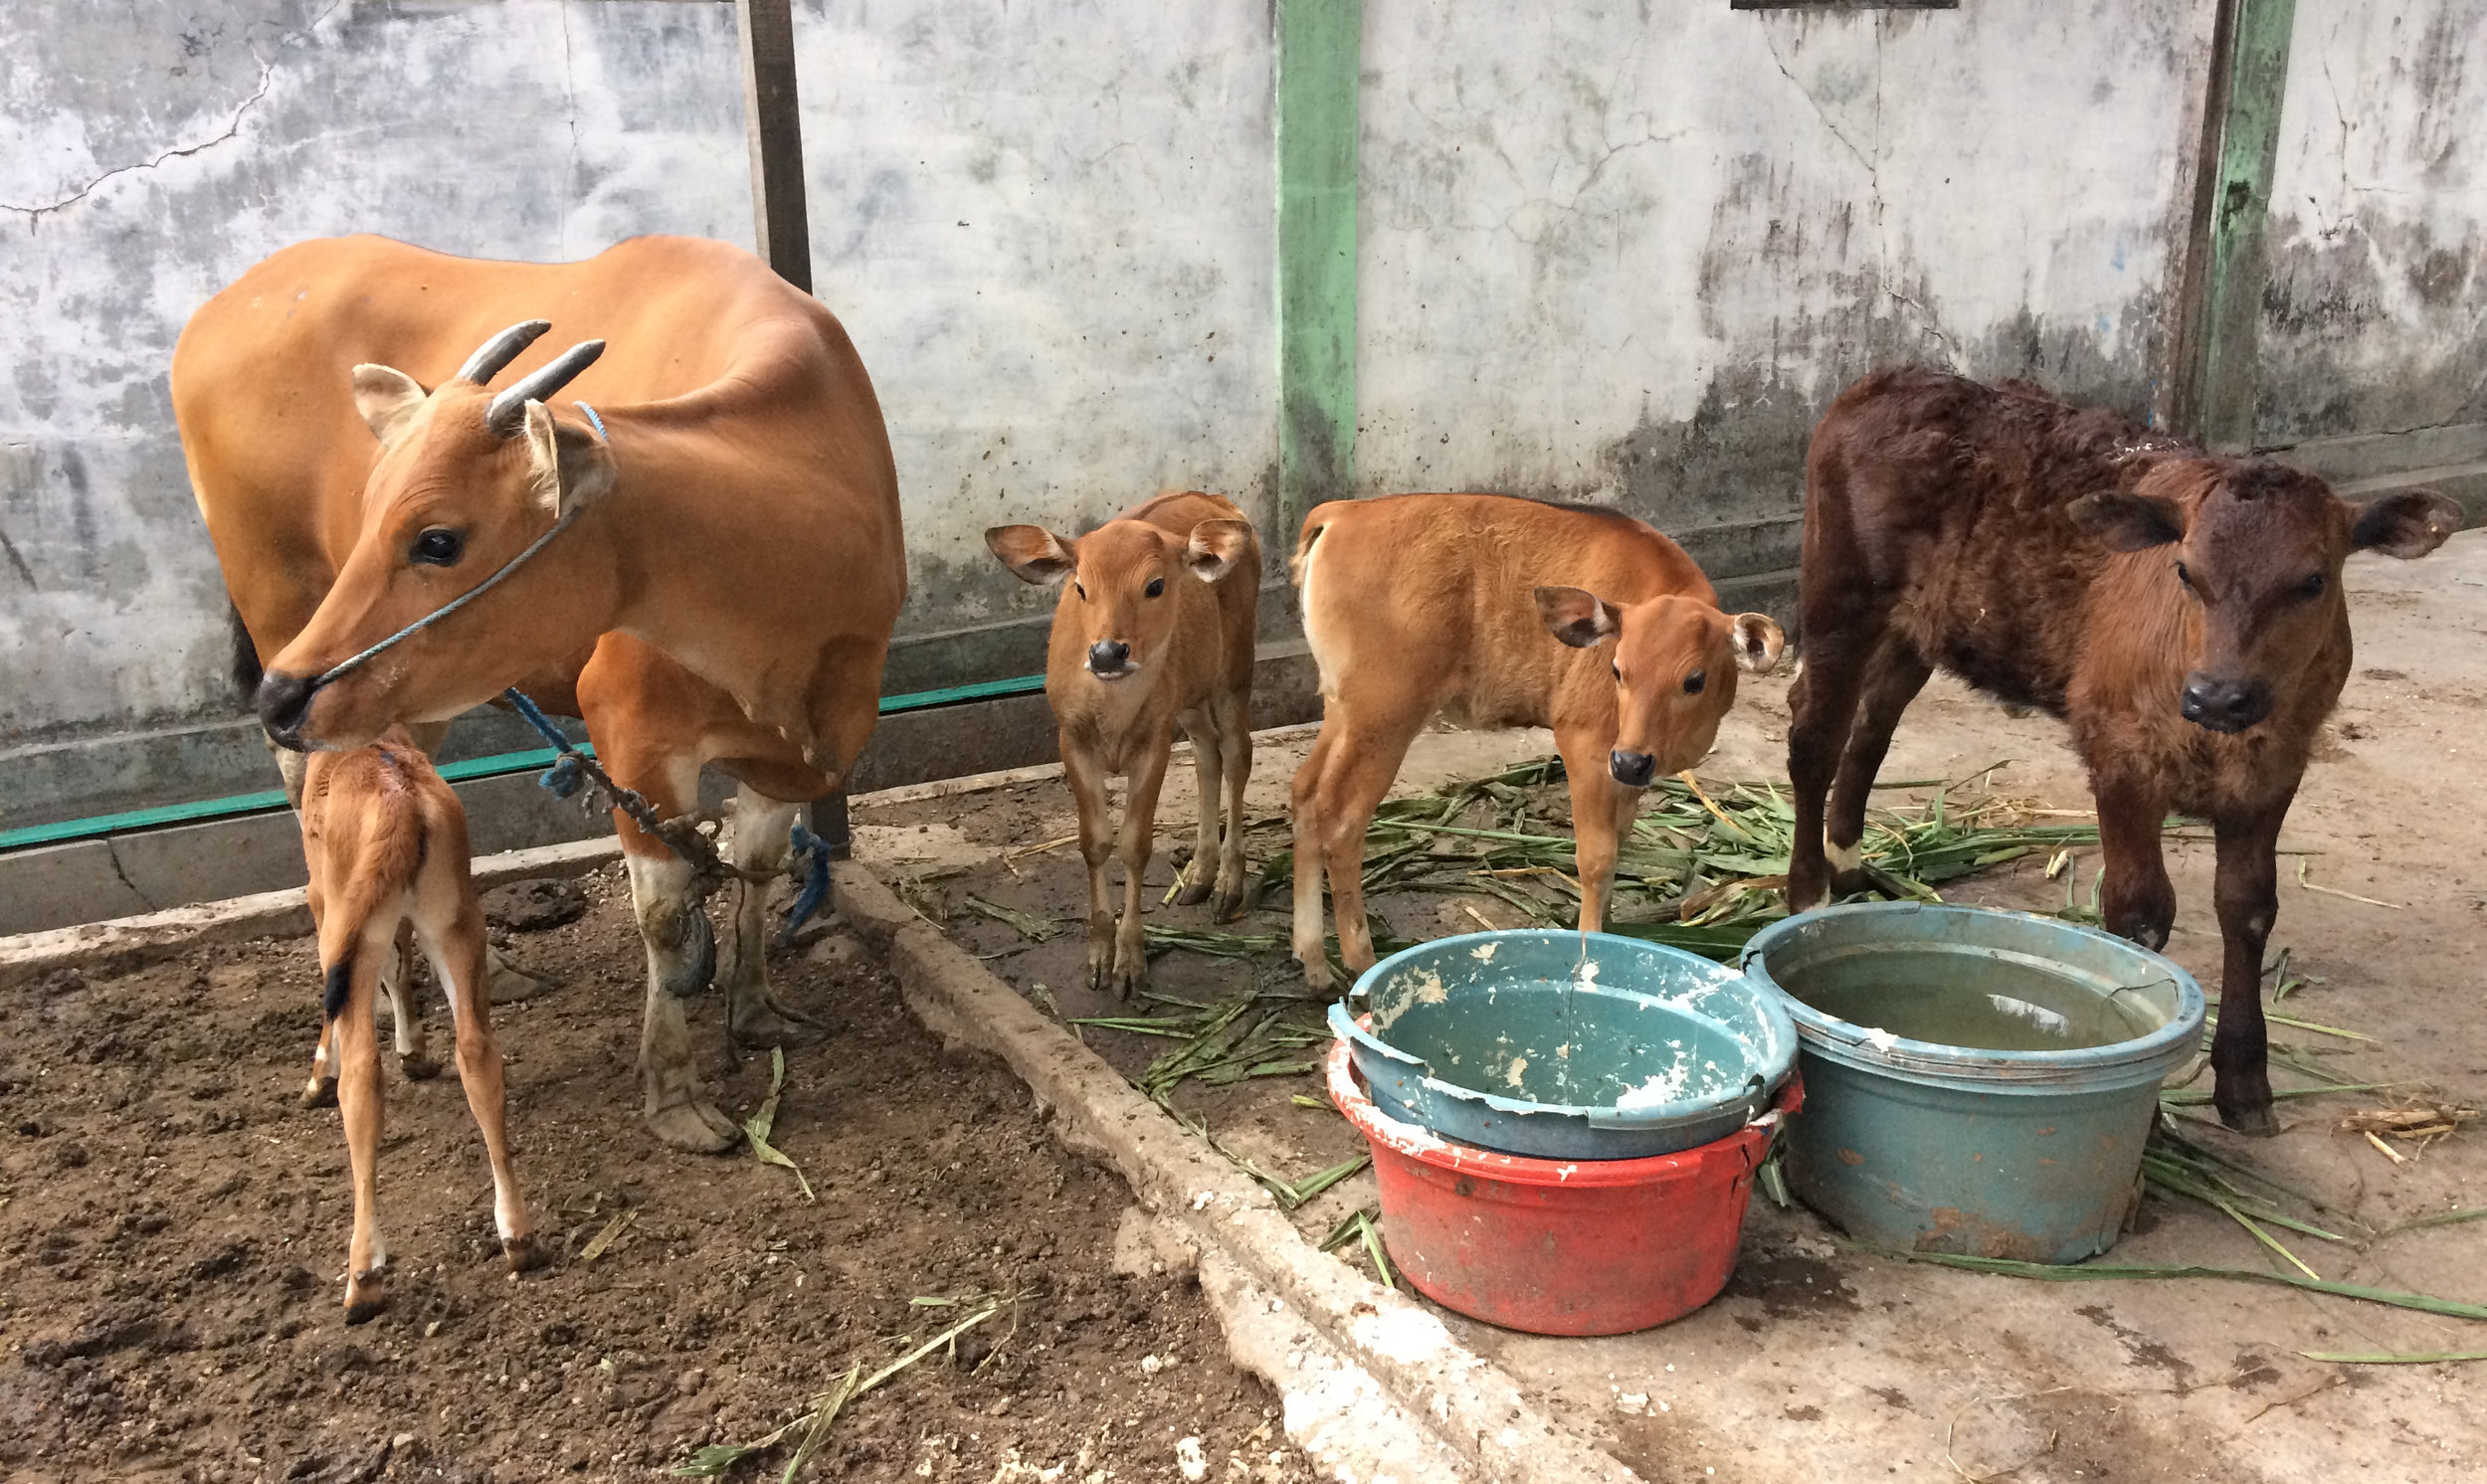 Bali cow with Bali and Simmental cross calves at a tofu factory and cattle fattening operation in Banjarbaru.